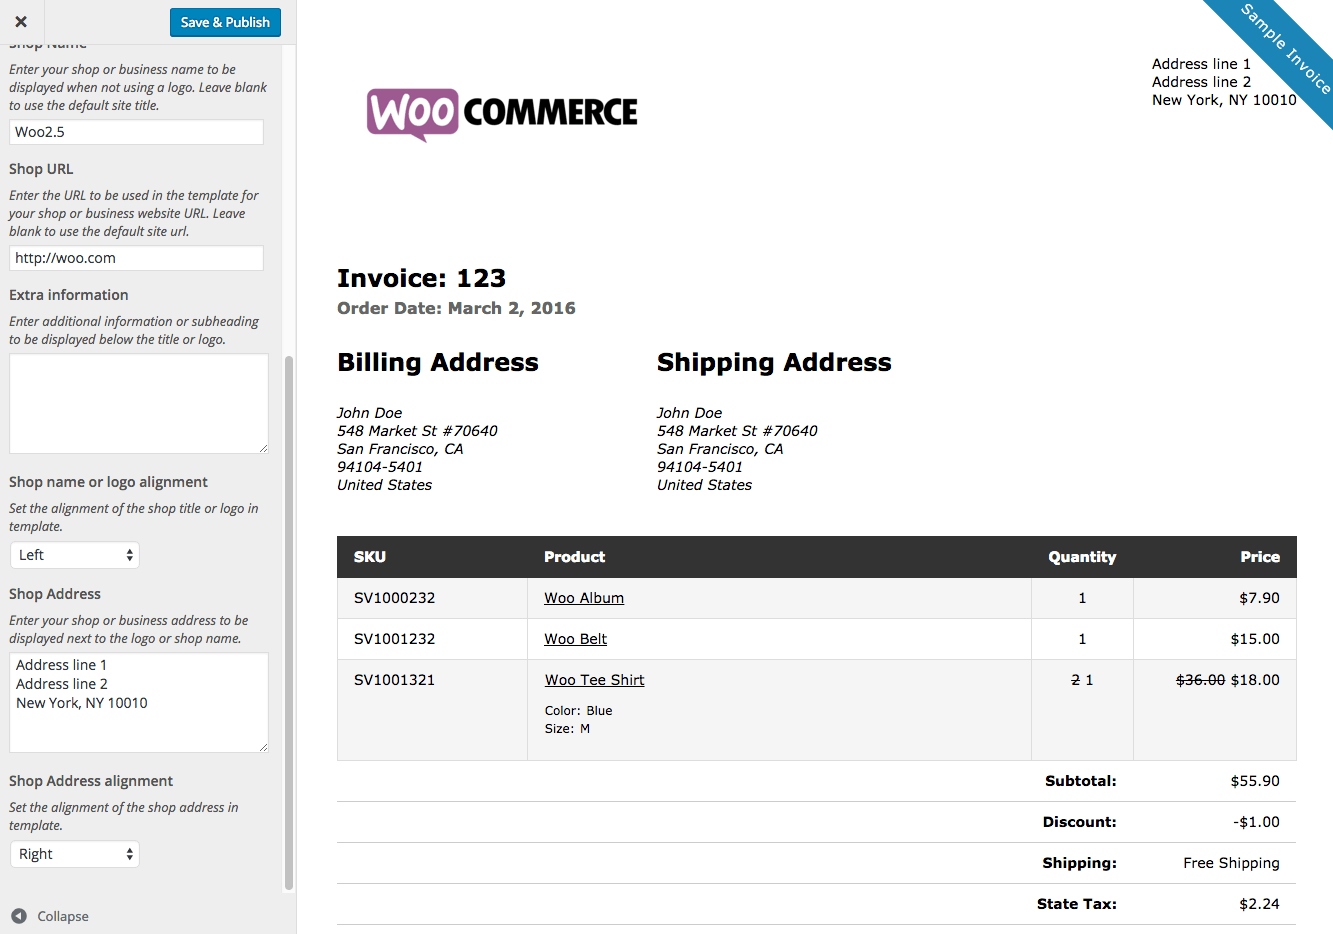 Floobydustus  Winsome Woocommerce Print Invoices Amp Packing Lists  Woocommerce Docs With Extraordinary Woocommerce Print Invoices  Packing Lists Customizer With Adorable Internal Controls For Cash Receipts Also Letter Acknowledging Receipt In Addition Sales Receipt Templates And Cash Register Receipts Bpa As Well As Cash Receipt Example Additionally Smoothie Receipts From Docswoocommercecom With Floobydustus  Extraordinary Woocommerce Print Invoices Amp Packing Lists  Woocommerce Docs With Adorable Woocommerce Print Invoices  Packing Lists Customizer And Winsome Internal Controls For Cash Receipts Also Letter Acknowledging Receipt In Addition Sales Receipt Templates From Docswoocommercecom